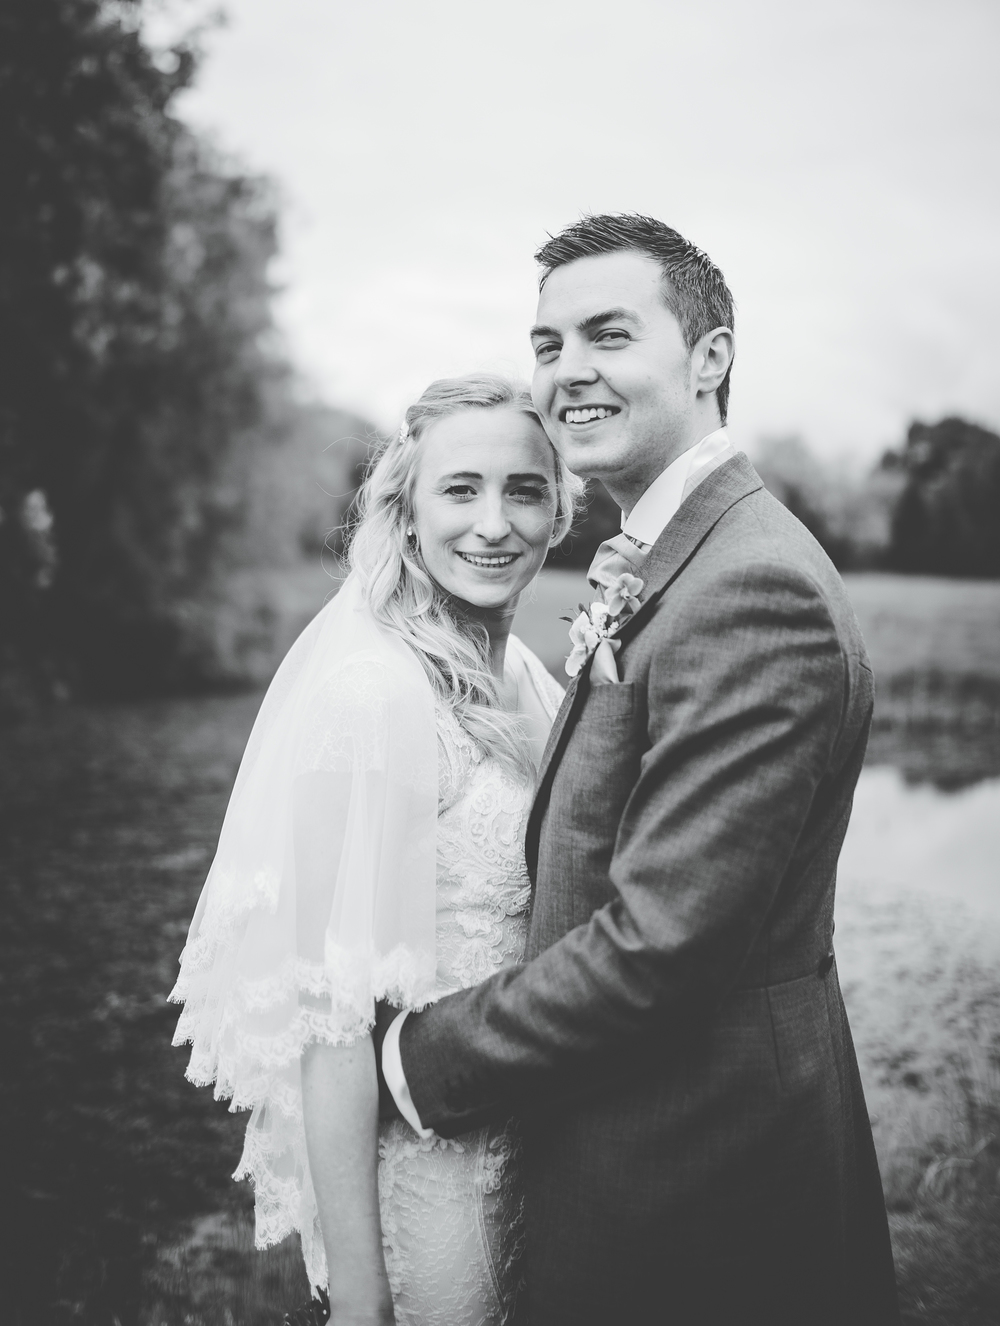 Black and white photo of the bride and groom smiling. Creative photography.